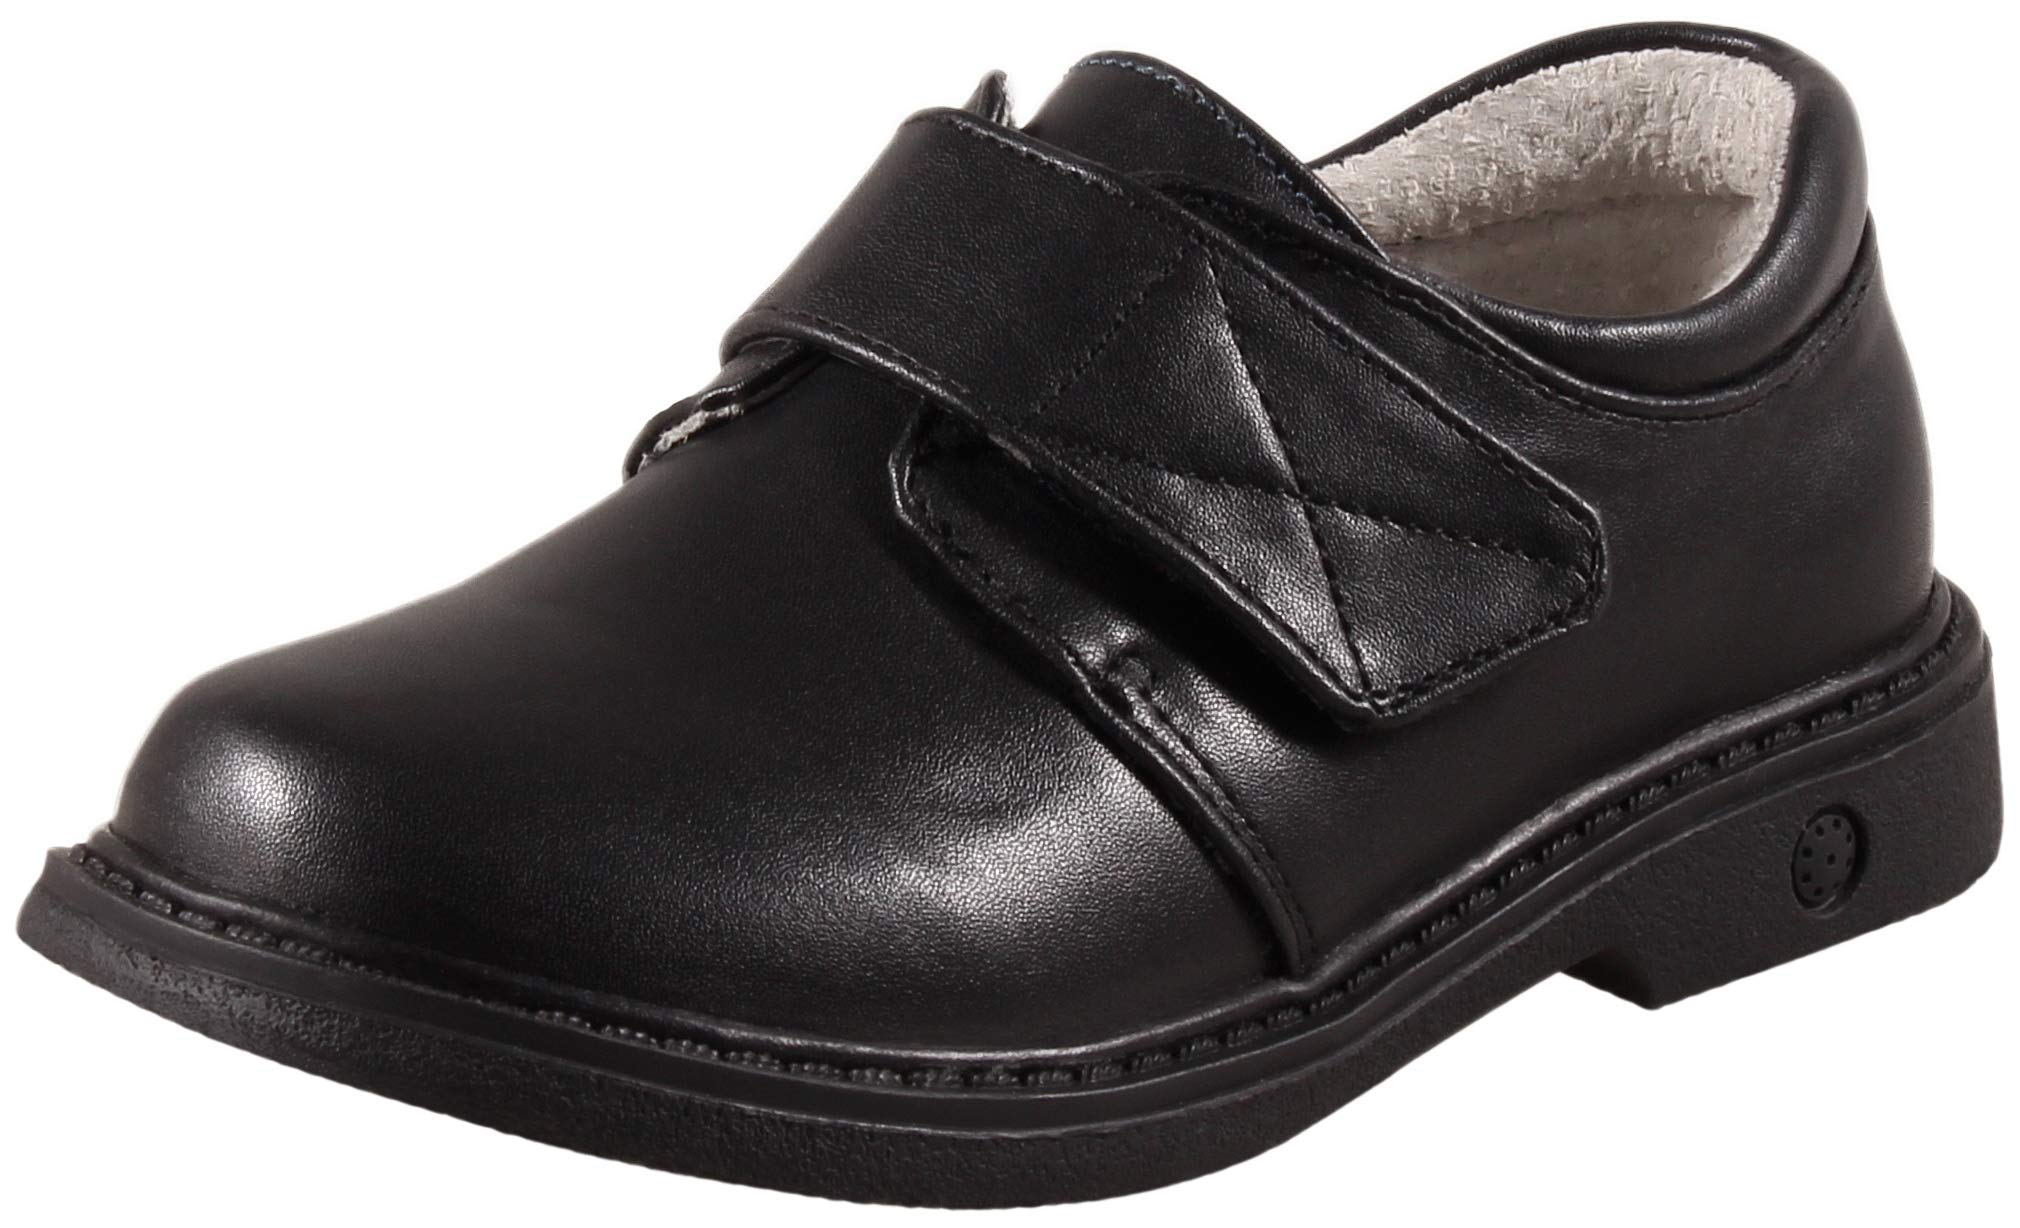 SKOEX Boy's School Uniform Easy Fasten Dress Oxford Shoe Black US Size 11 Black